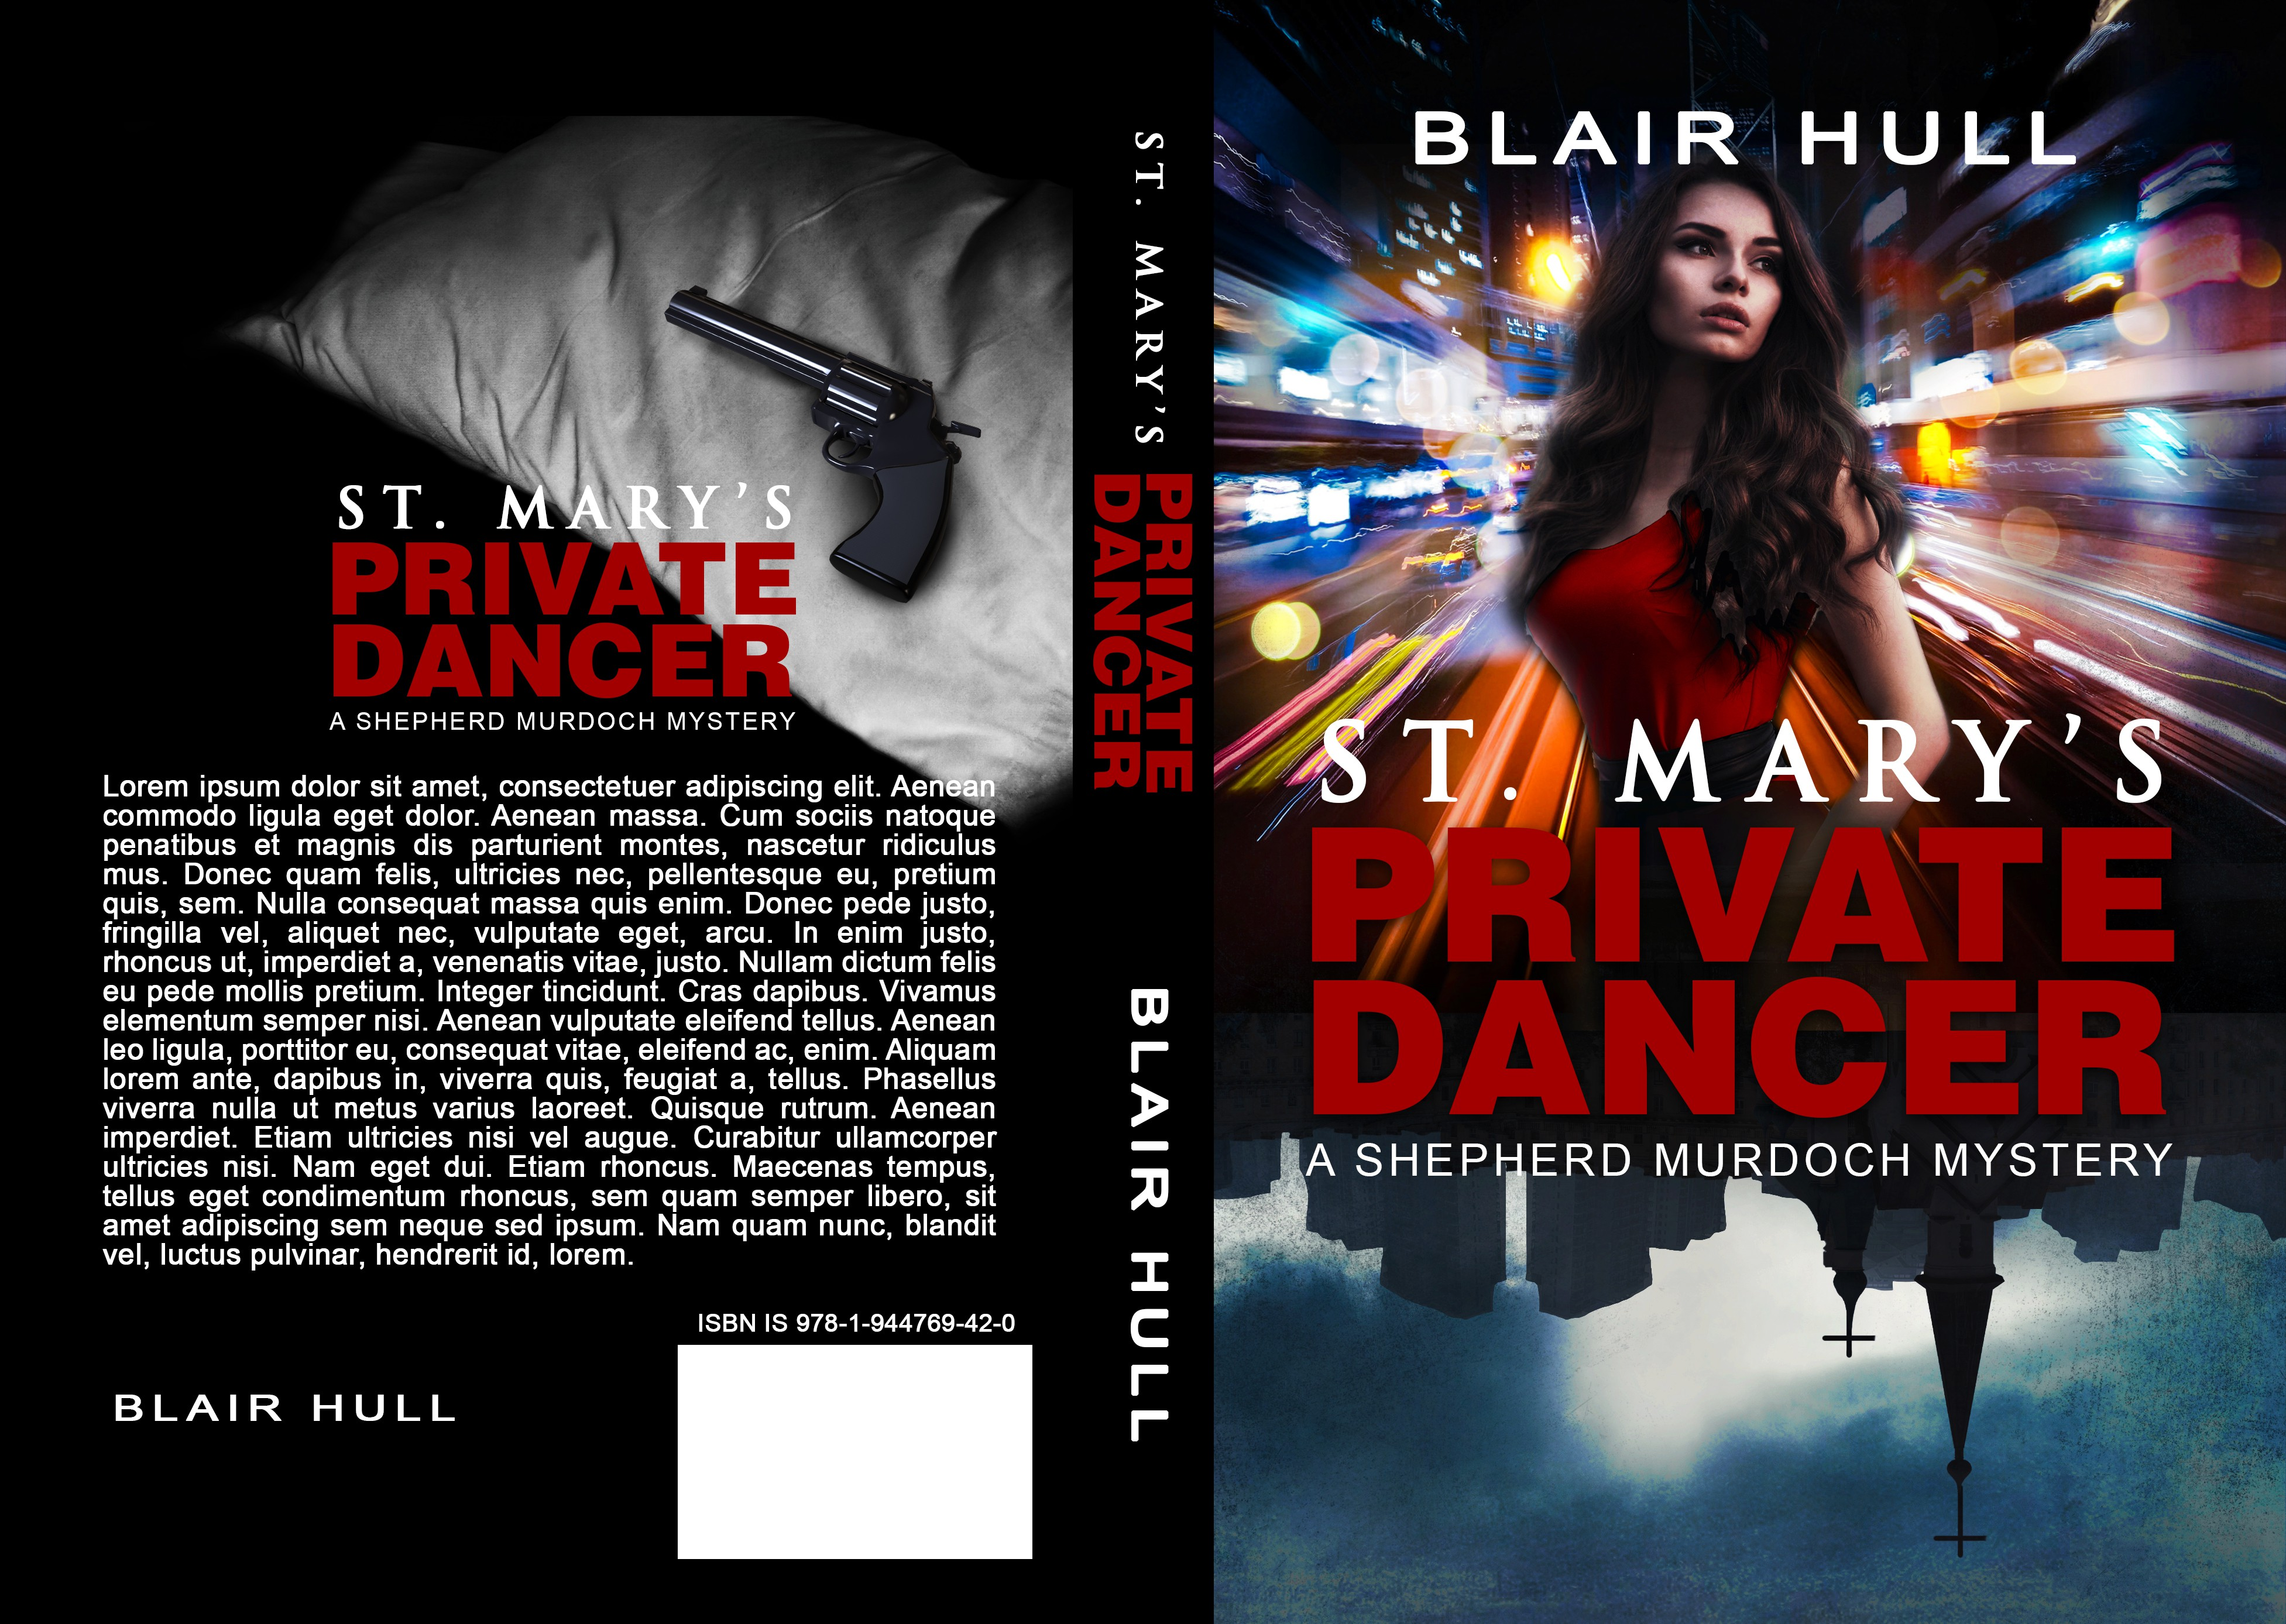 St. Mary's Private Dancer II